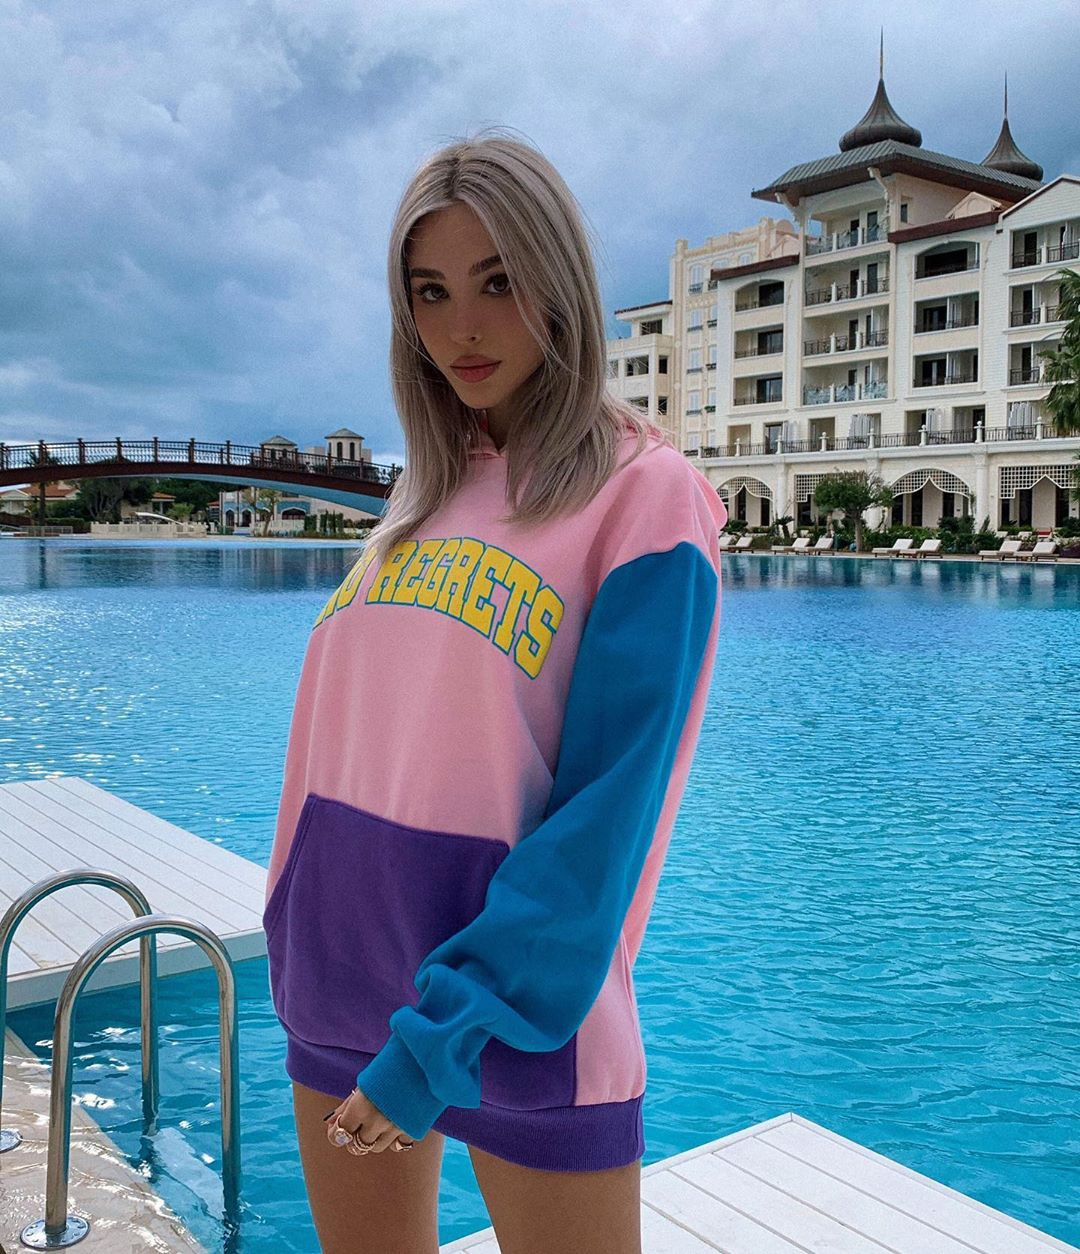 Maria Domark Easy Long Hairstyles, costumes designs, long hair